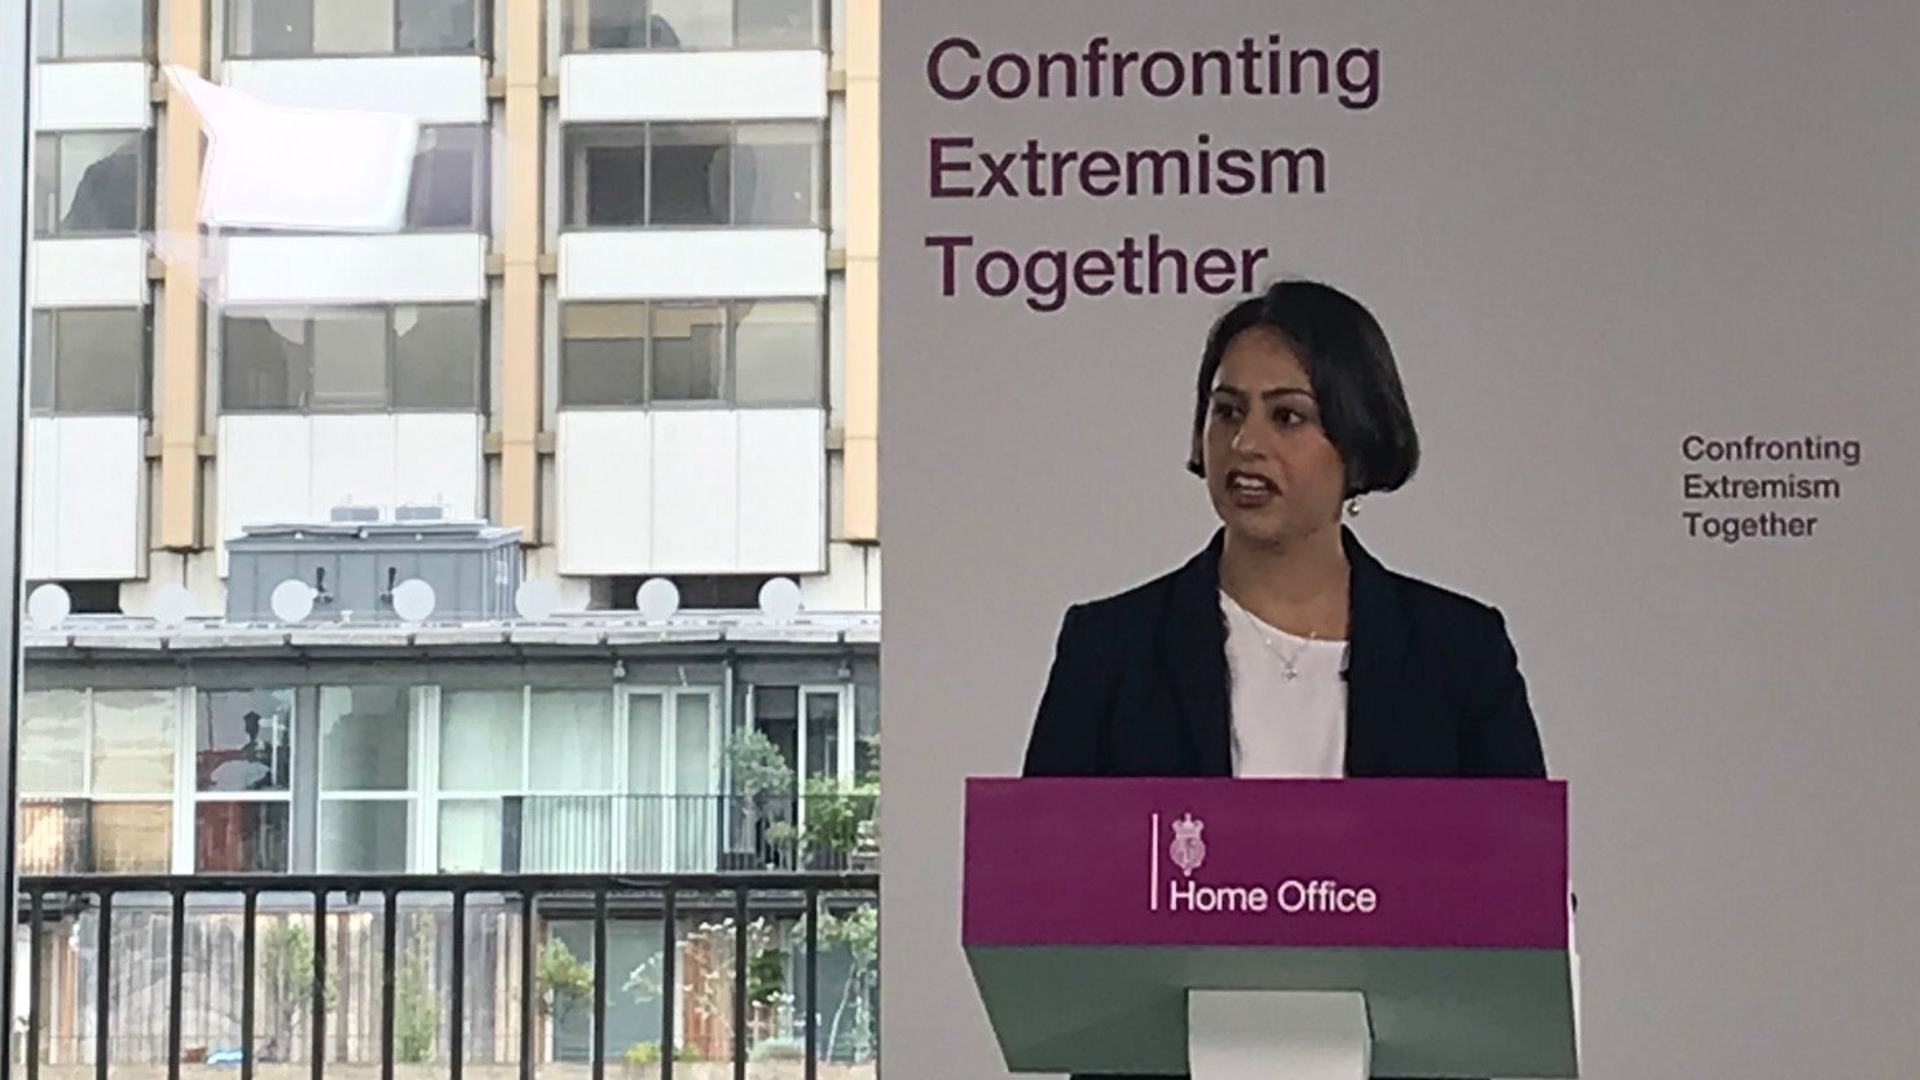 Sara giving a speech for the Home Office Confronting Extremism Together campaign